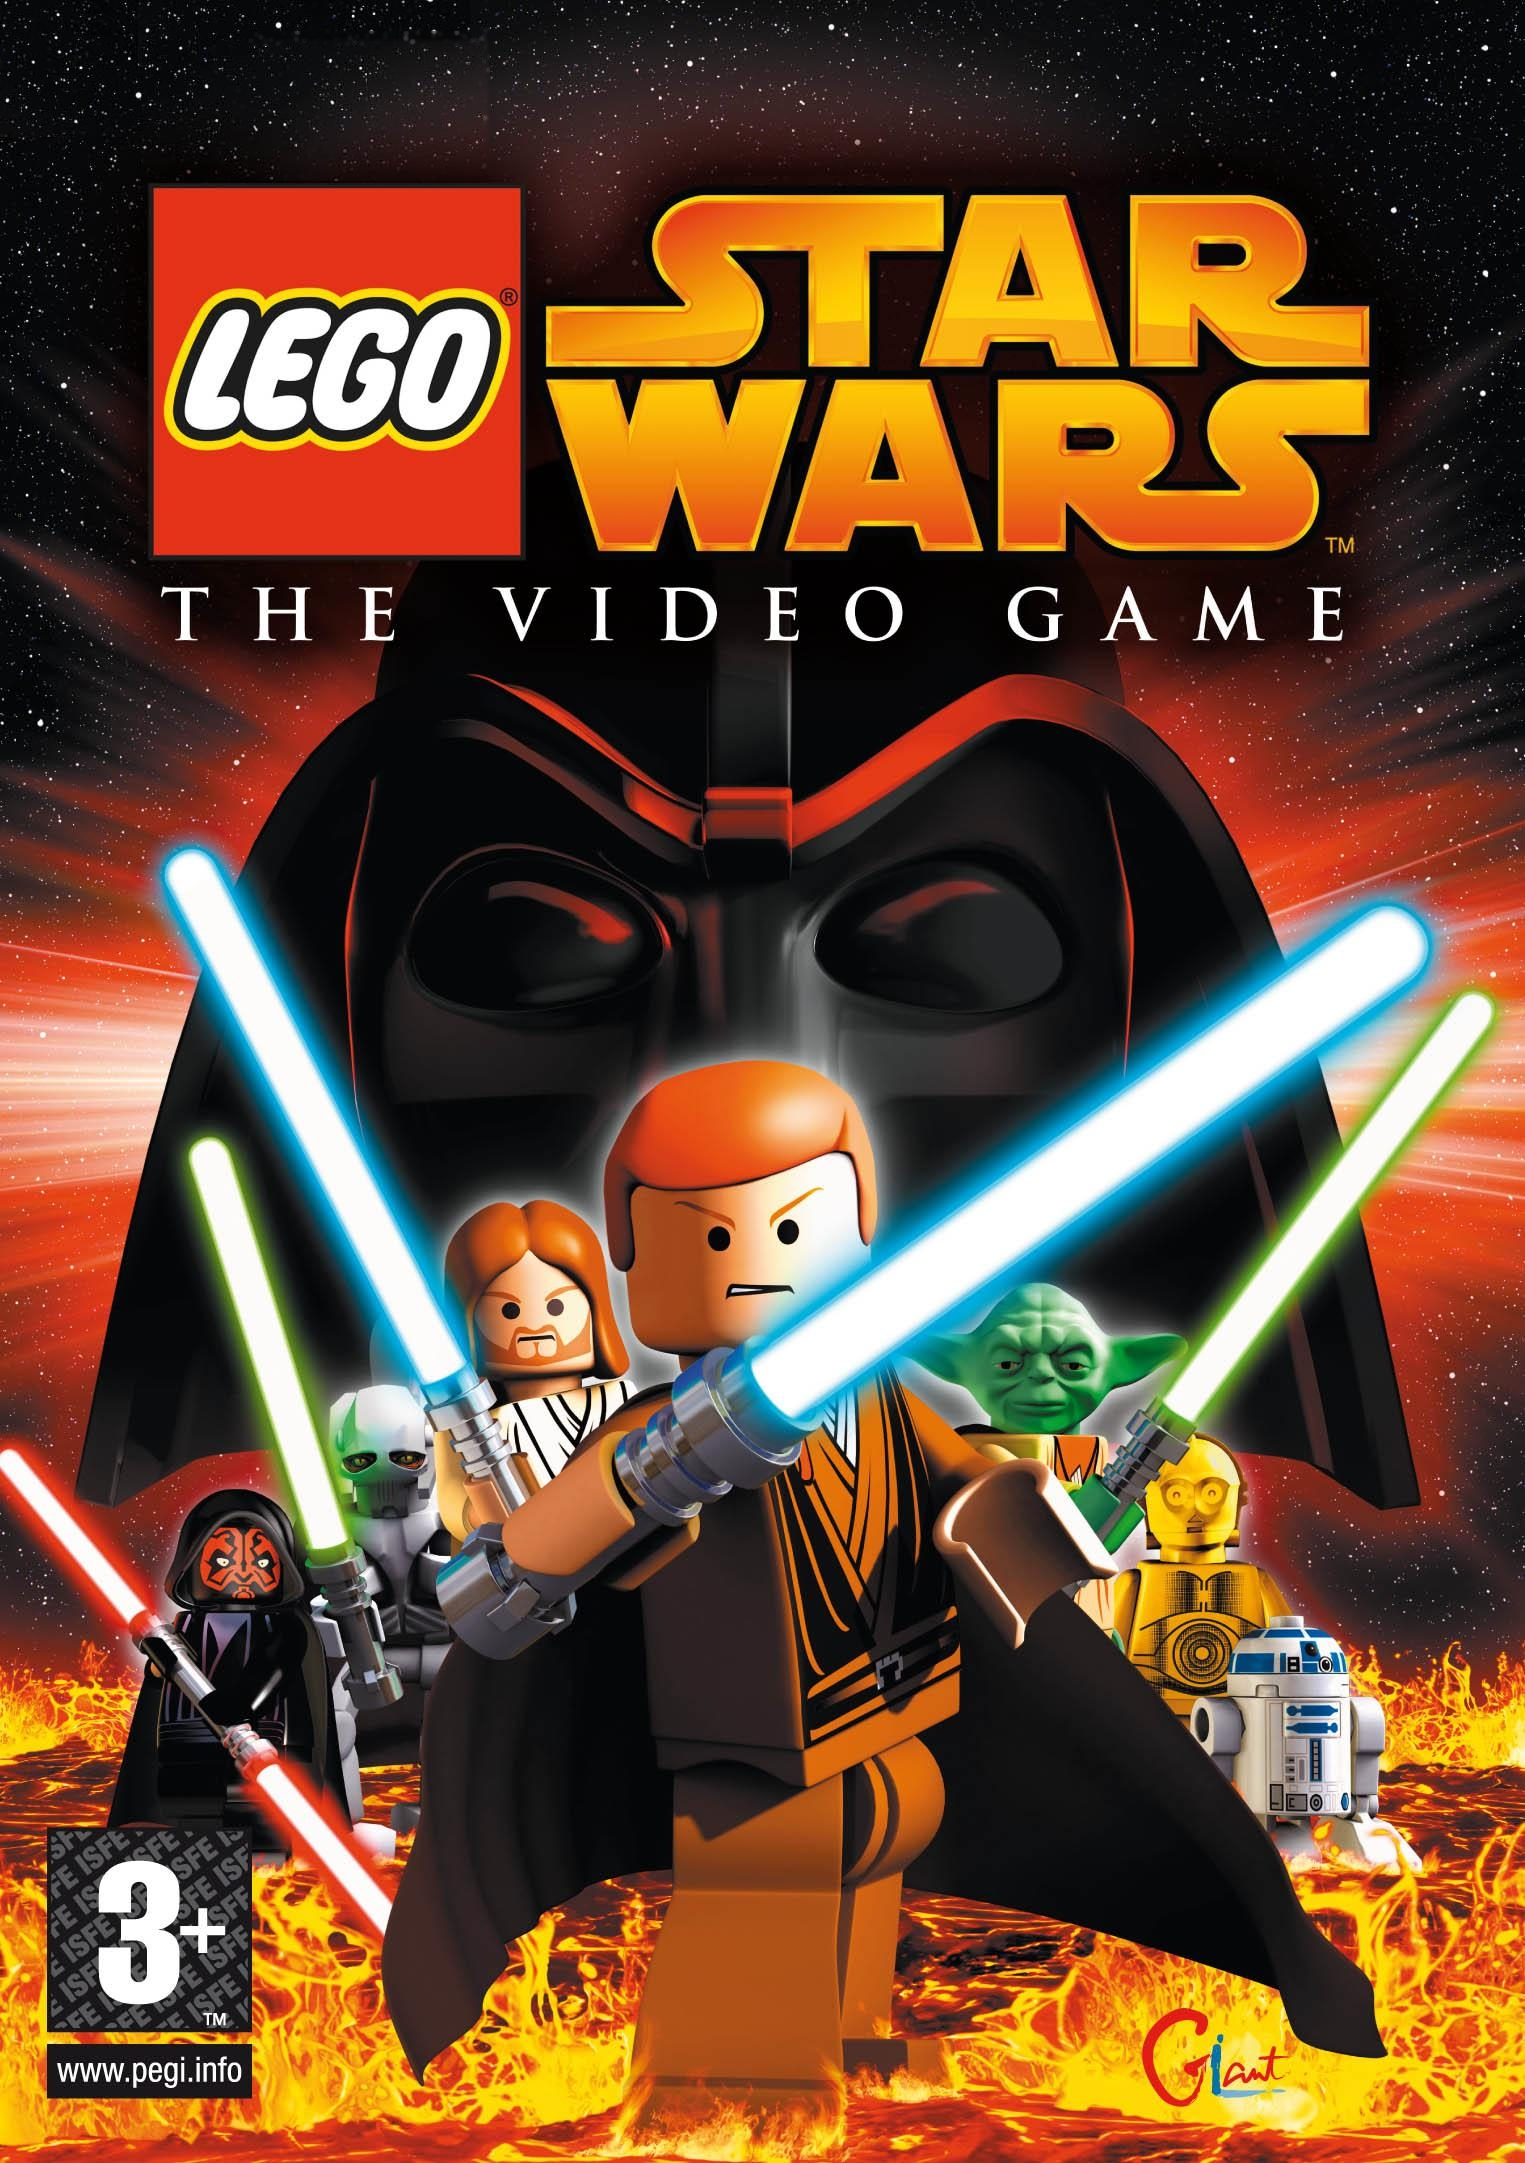 Lego Star Wars: The Video Game (Video Game 2005) - IMDb